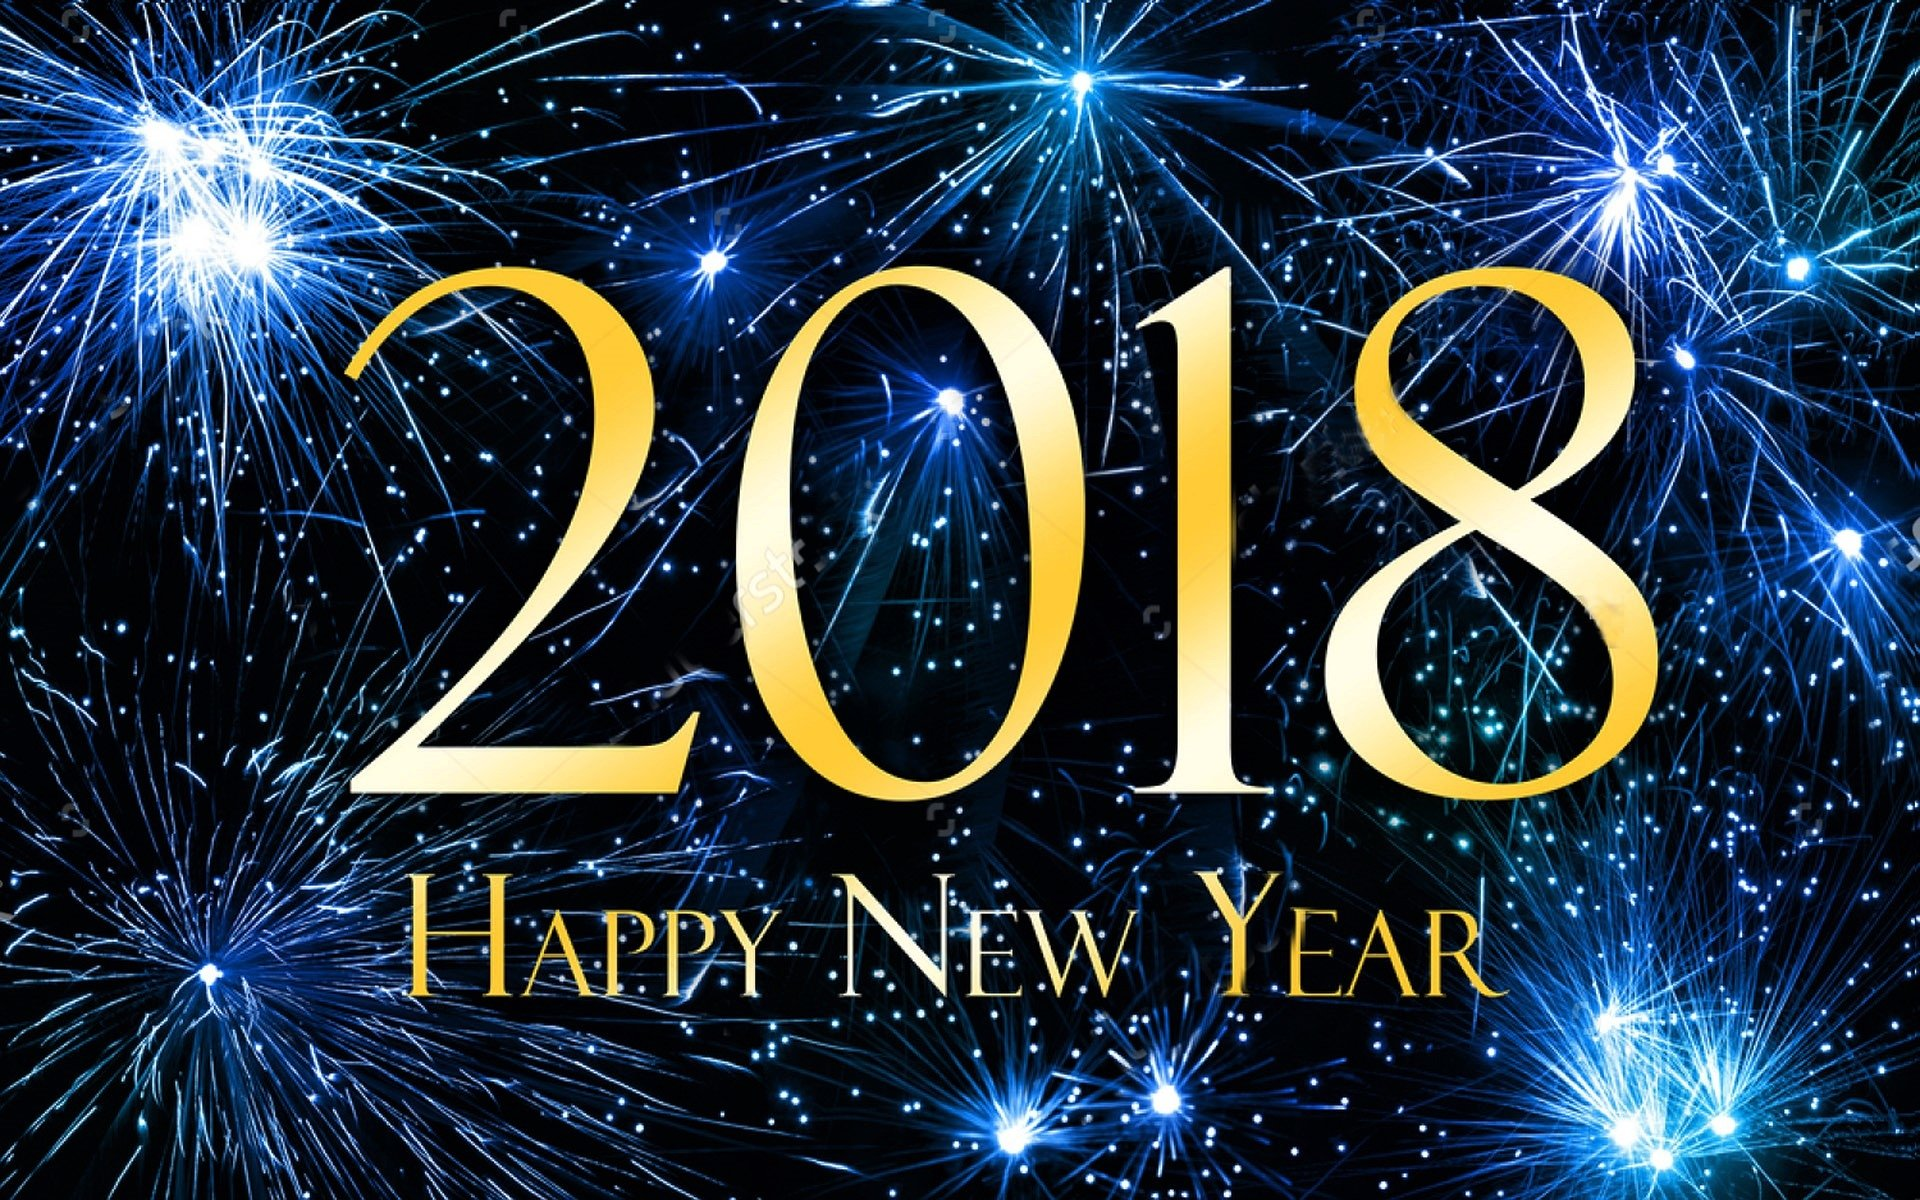 New Year Hd Wallpaper Background Image X Id